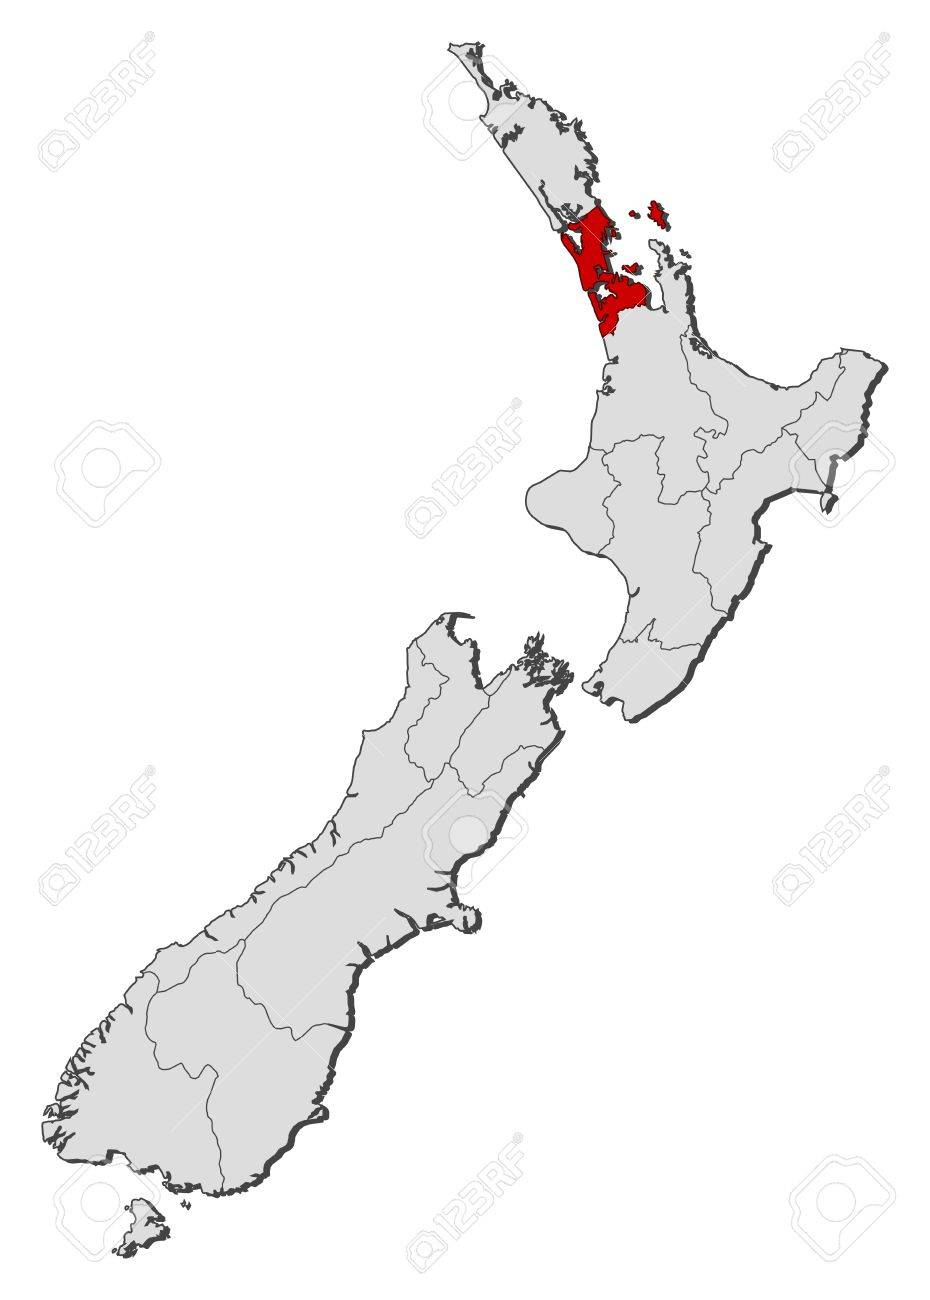 Political Map Of New Zealand.Political Map Of New Zealand With The Several Regions Where Auckland